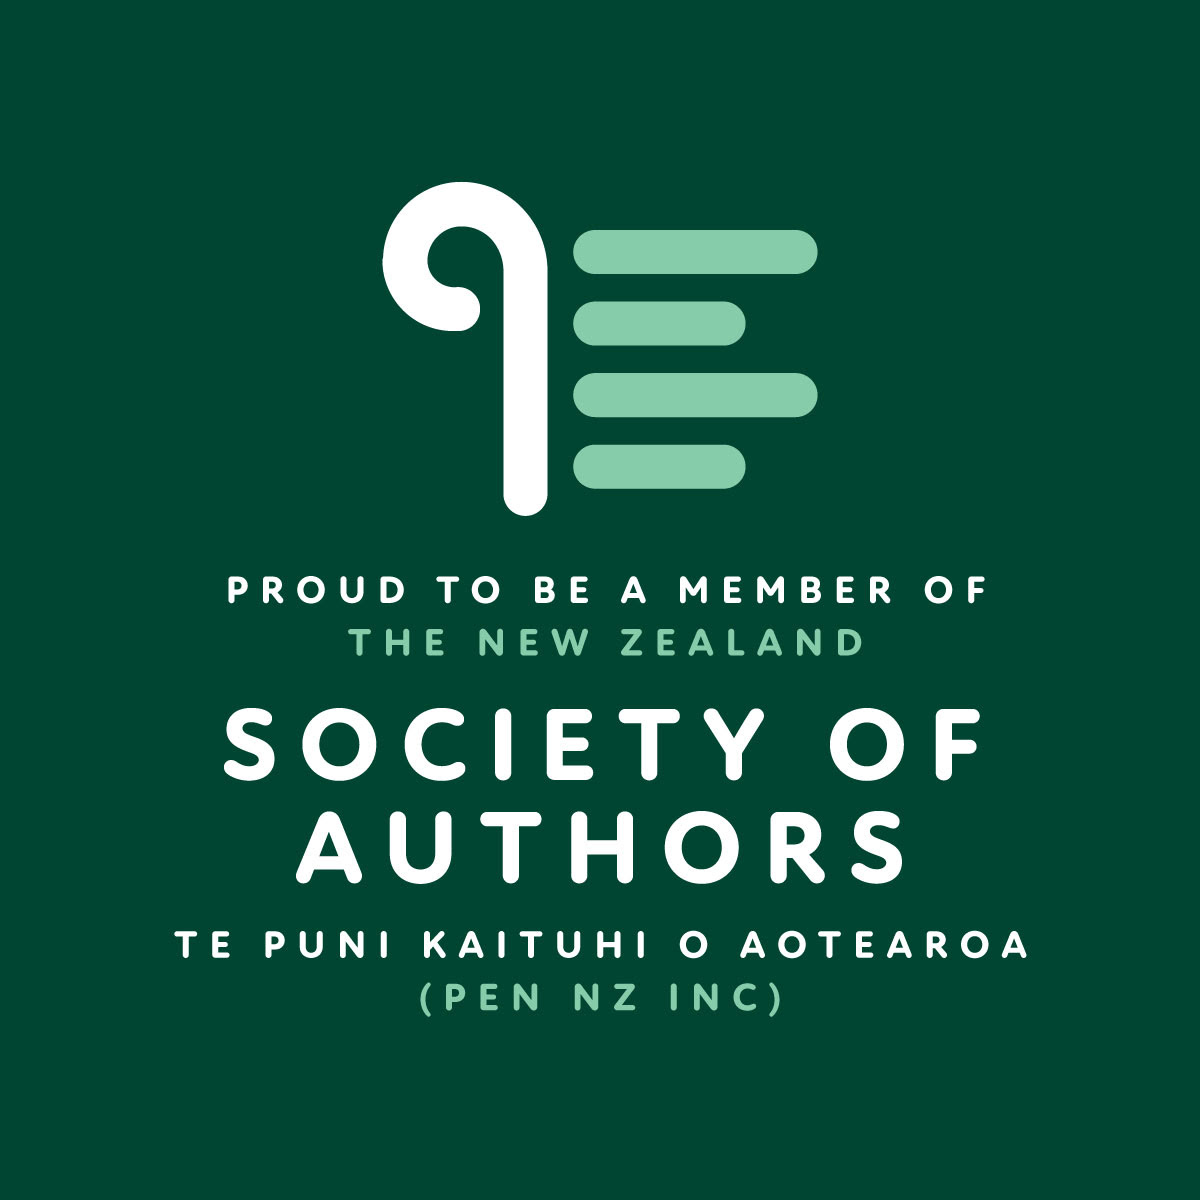 Proud to be a member of: